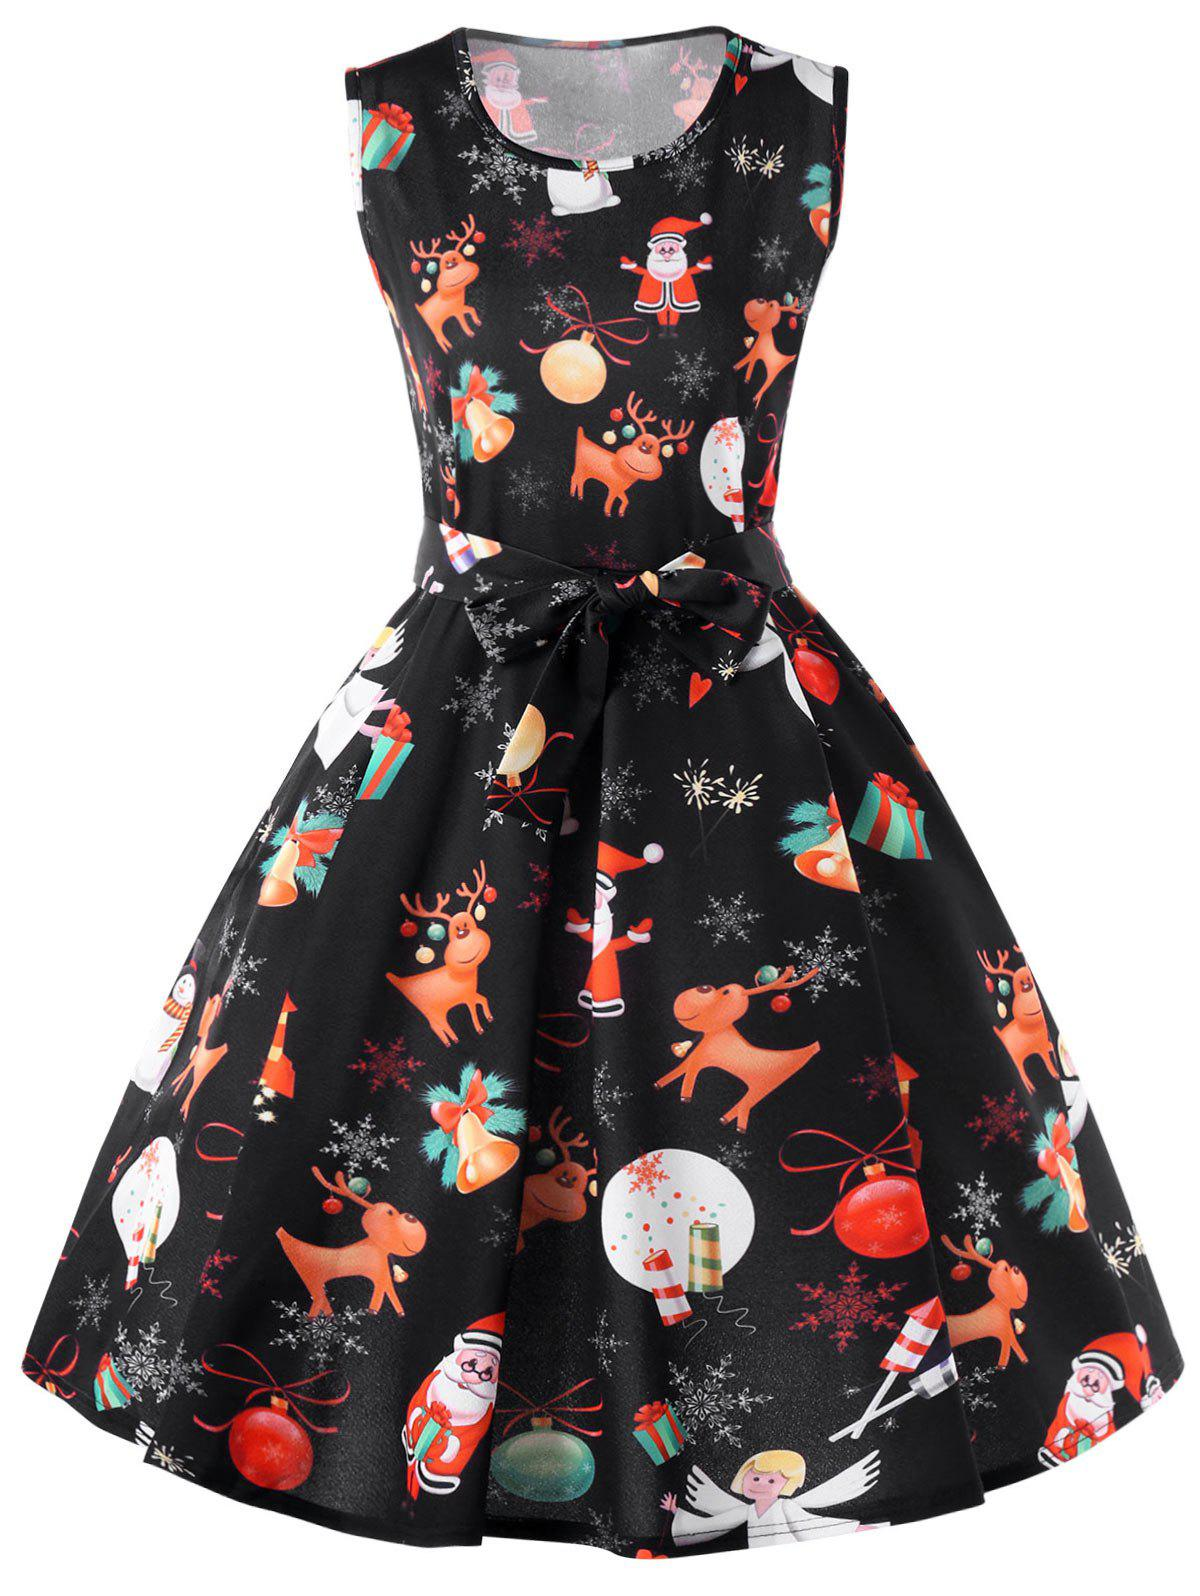 Fashion Christmas Reindeer Sleeveless Fit and Flare Dress